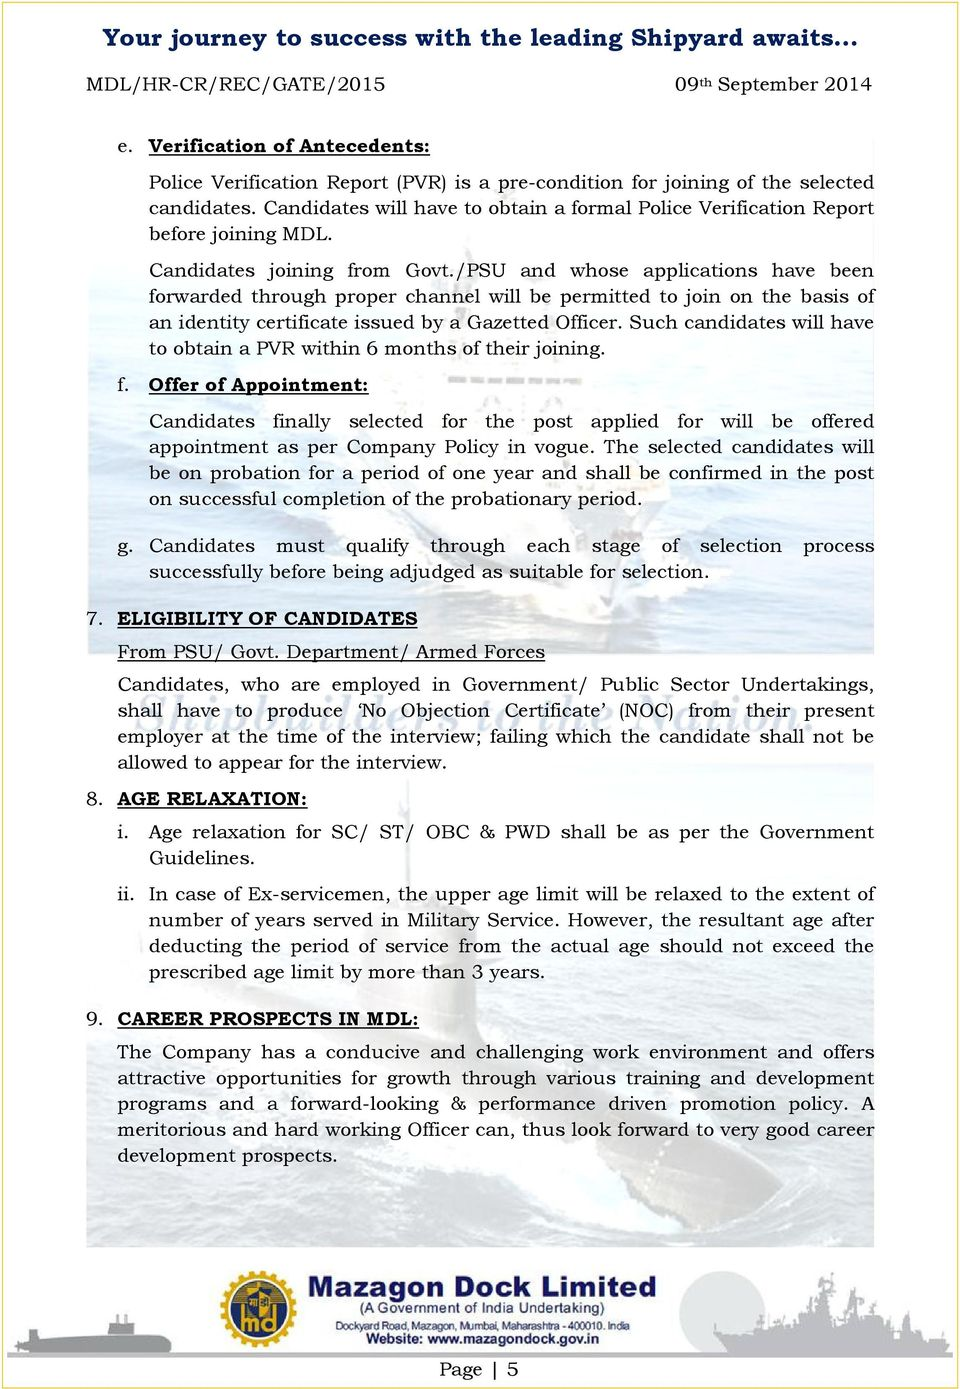 /PSU and whose applications have been forwarded through proper channel will be permitted to join on the basis of an identity certificate issued by a Gazetted Officer.